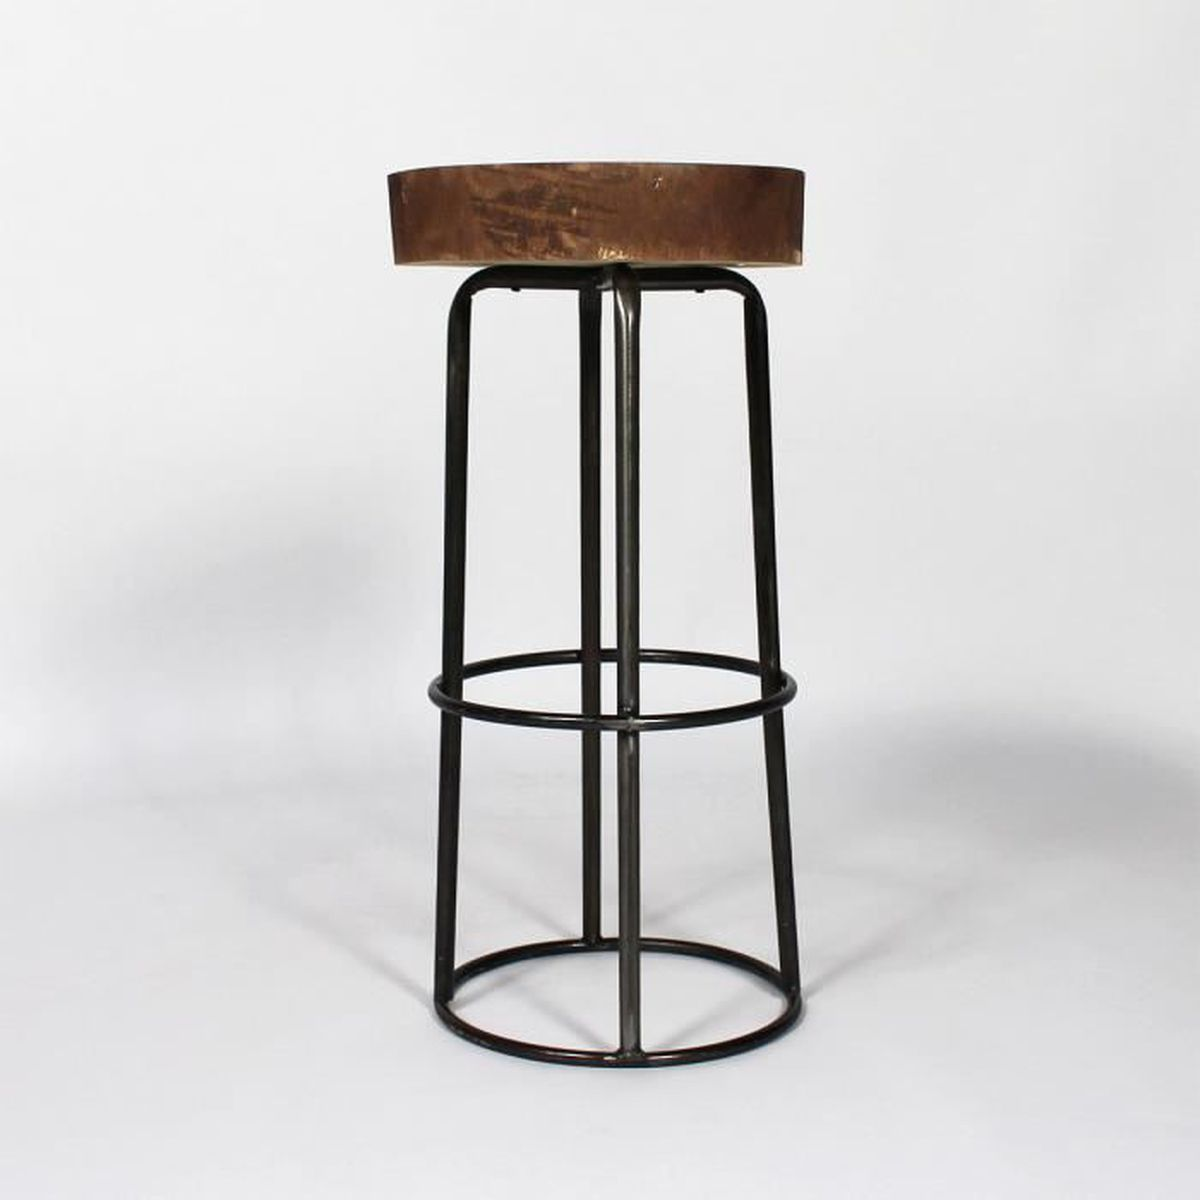 tabouret de bar original tronc d 39 arbre fcj03 36 bois achat vente tabouret de bar cdiscount. Black Bedroom Furniture Sets. Home Design Ideas